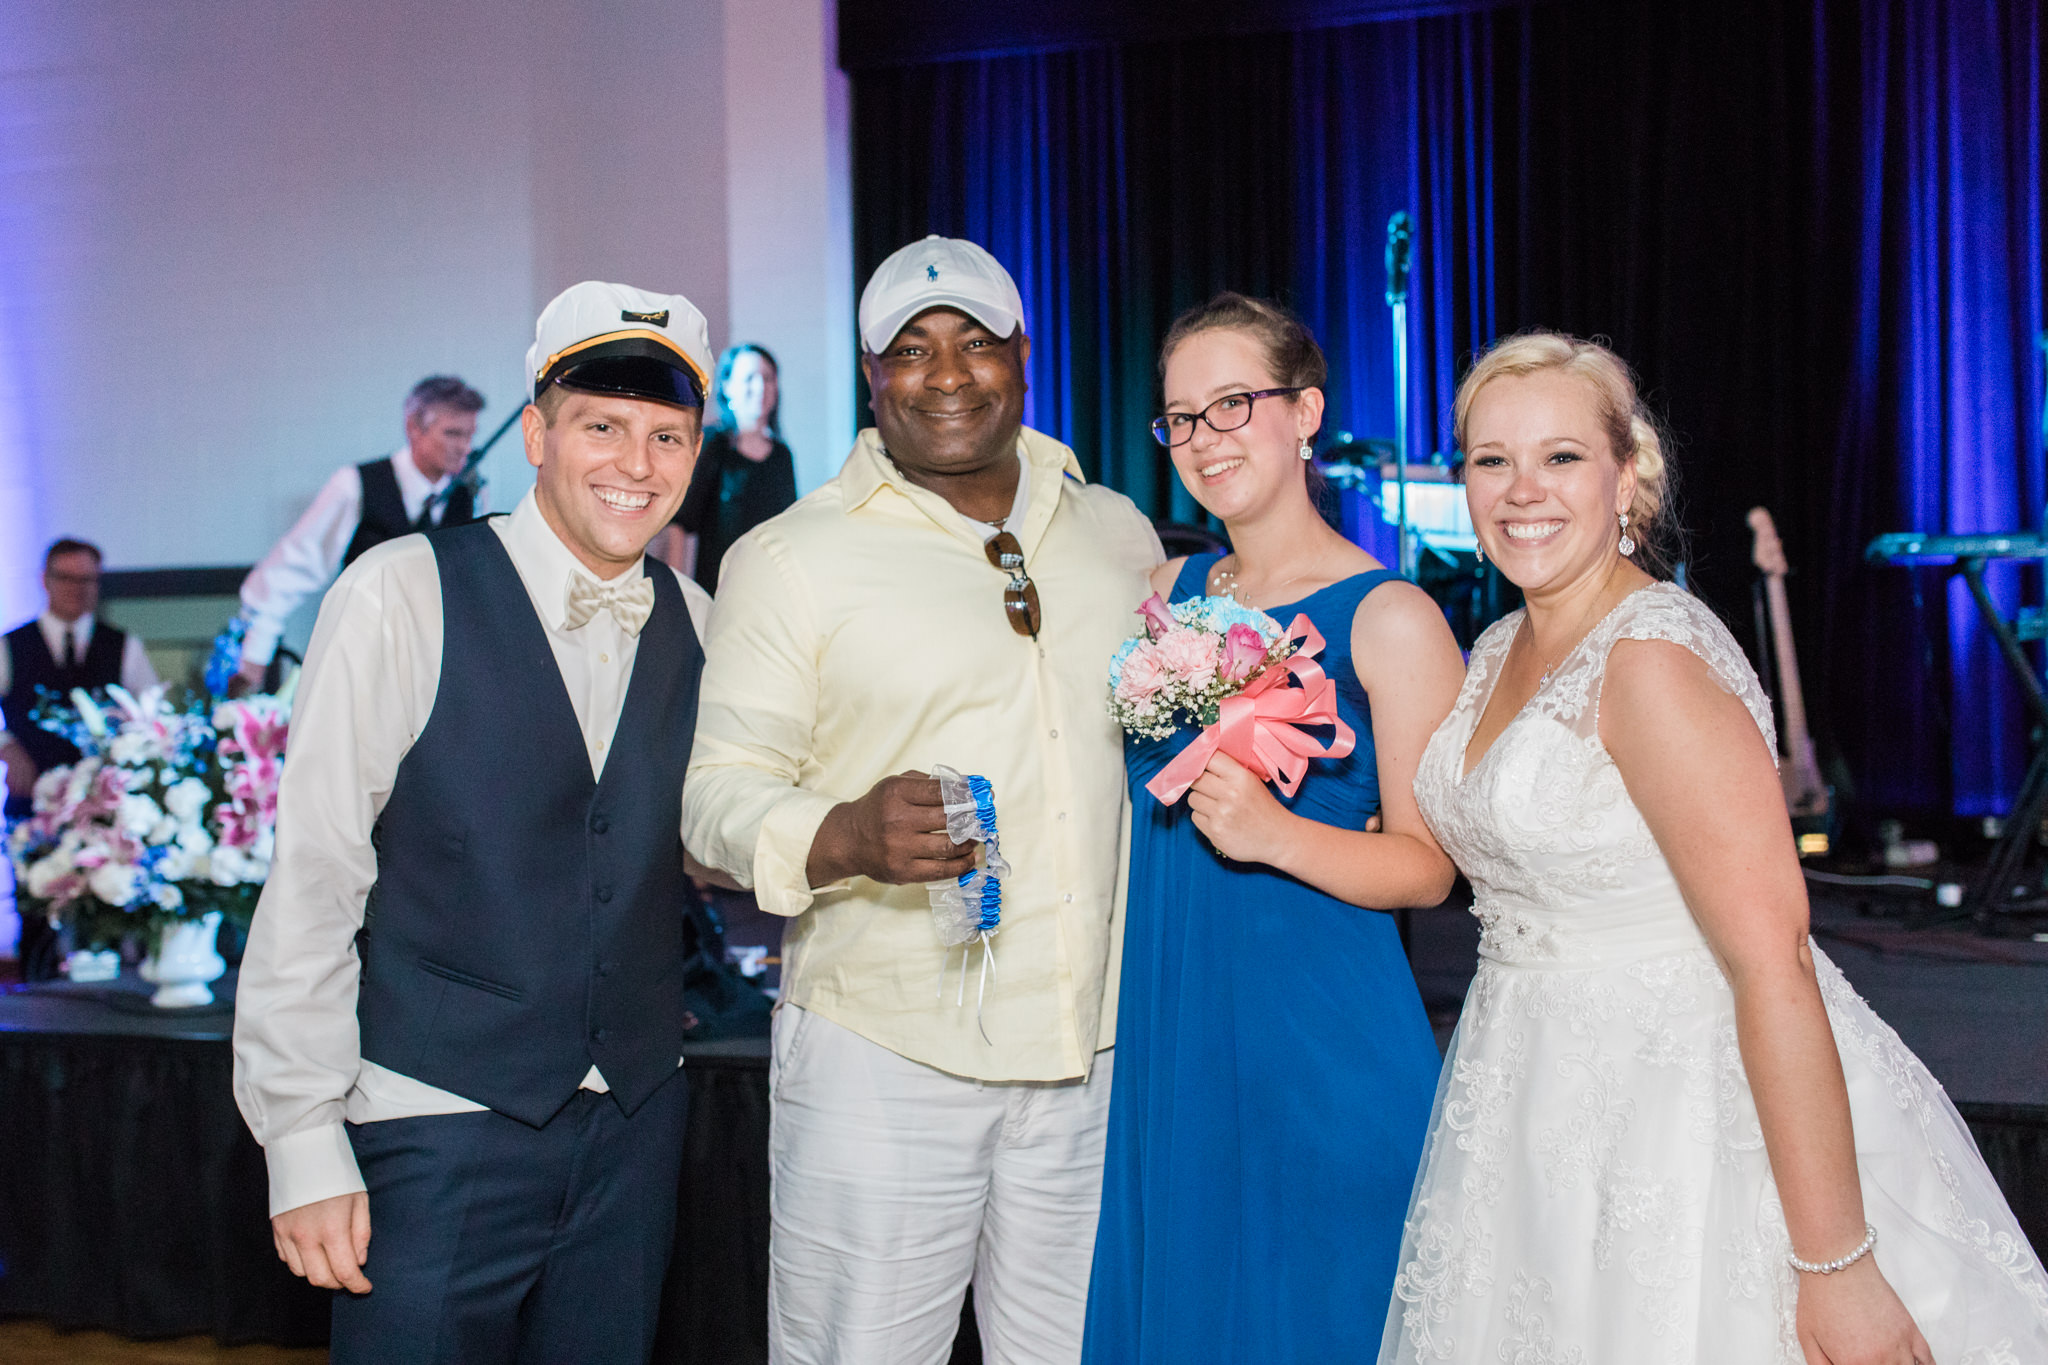 Garter toss and bouquet toss winners with bride and groom at Bellarmine wedding reception in Louisville Ky